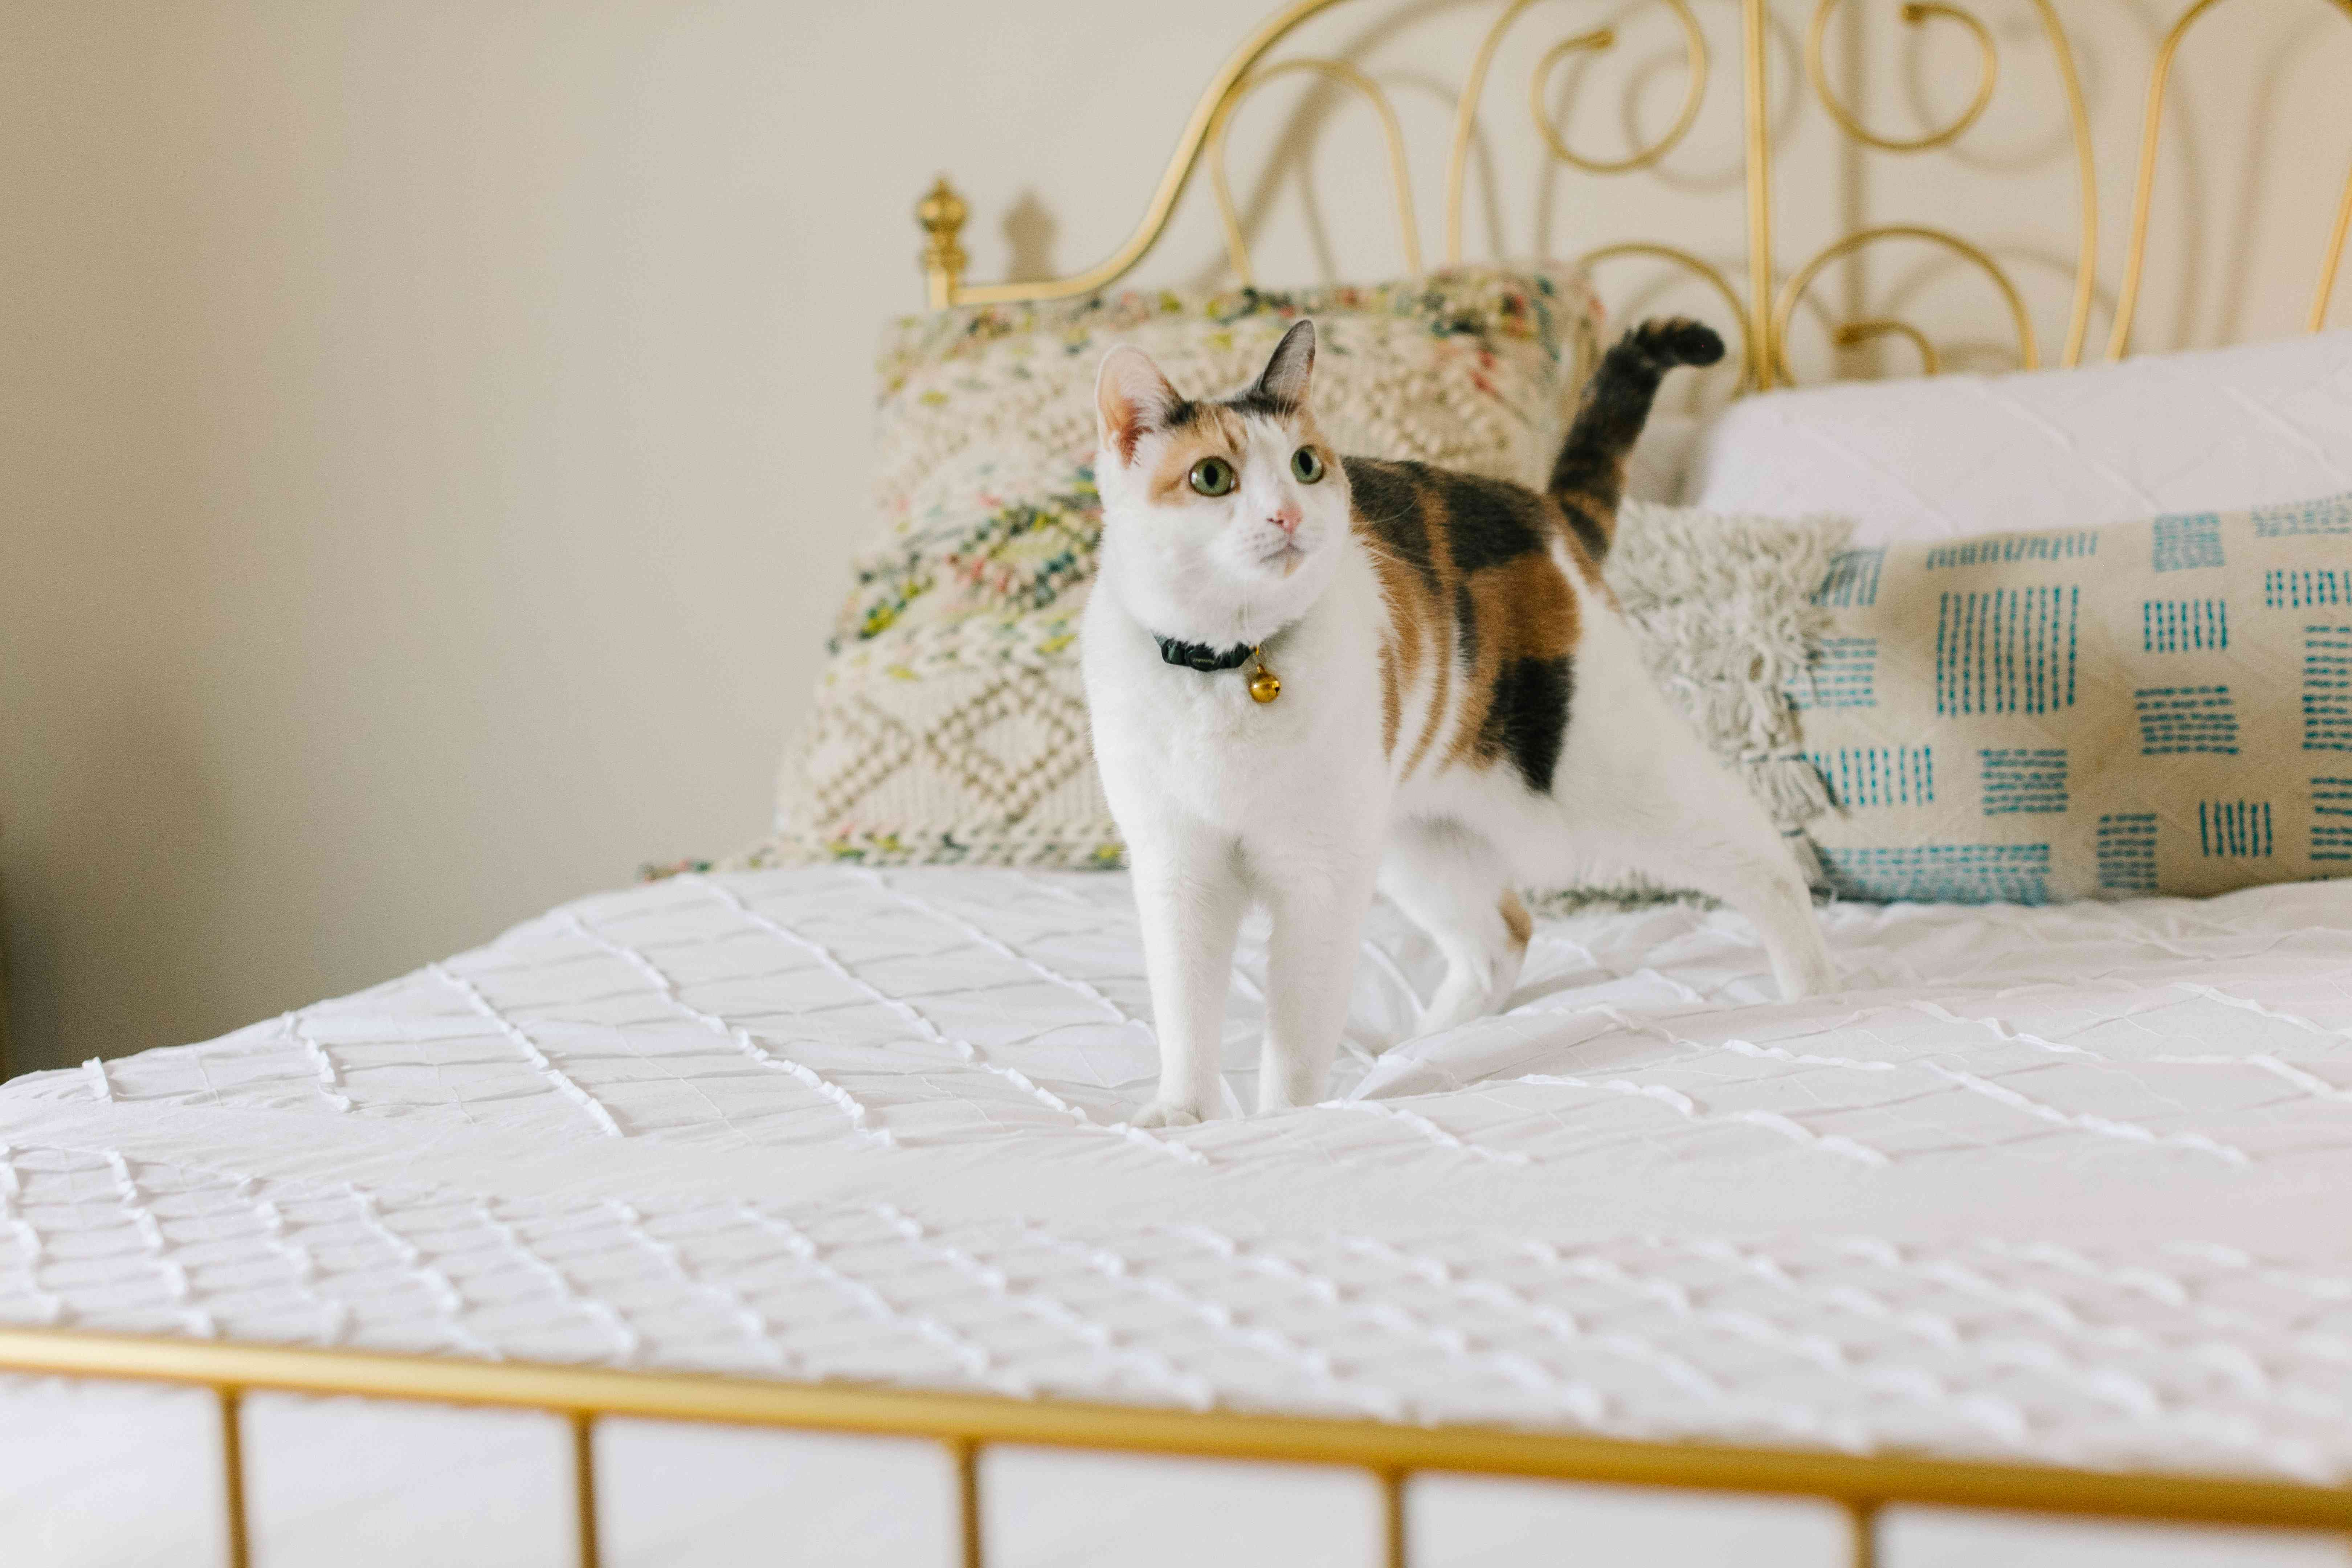 calico kitty stands on pretty white quilt on a gold metal bed